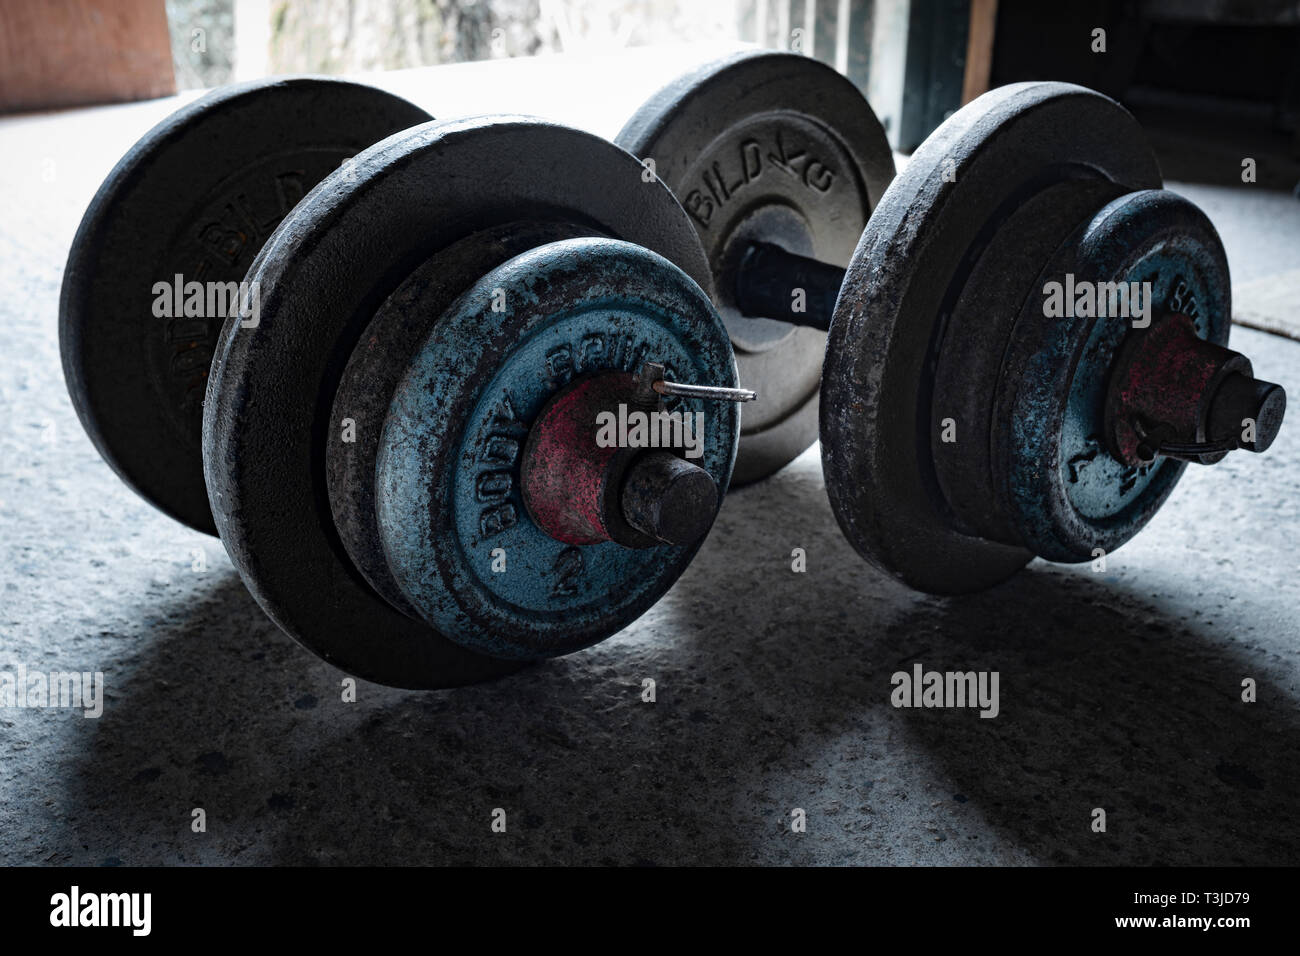 What are must have items for your garage gym quora